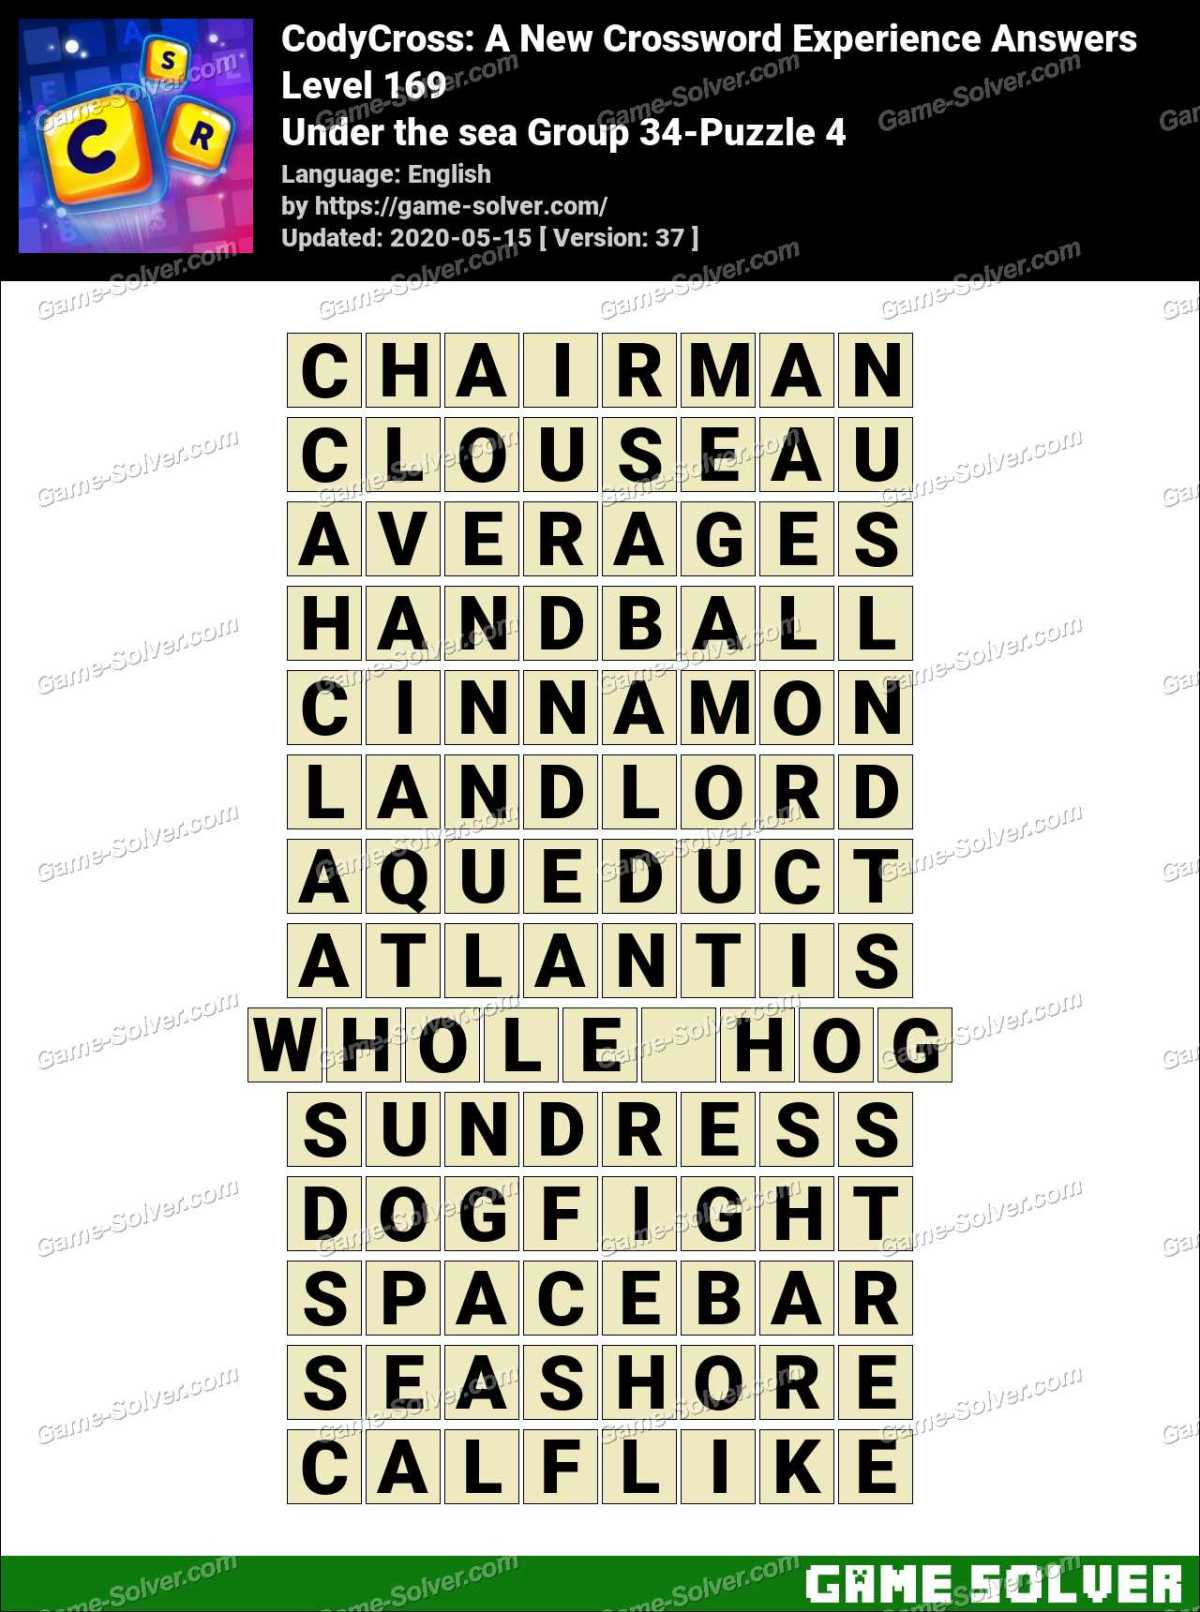 CodyCross Under the sea Group 34-Puzzle 4 Answers